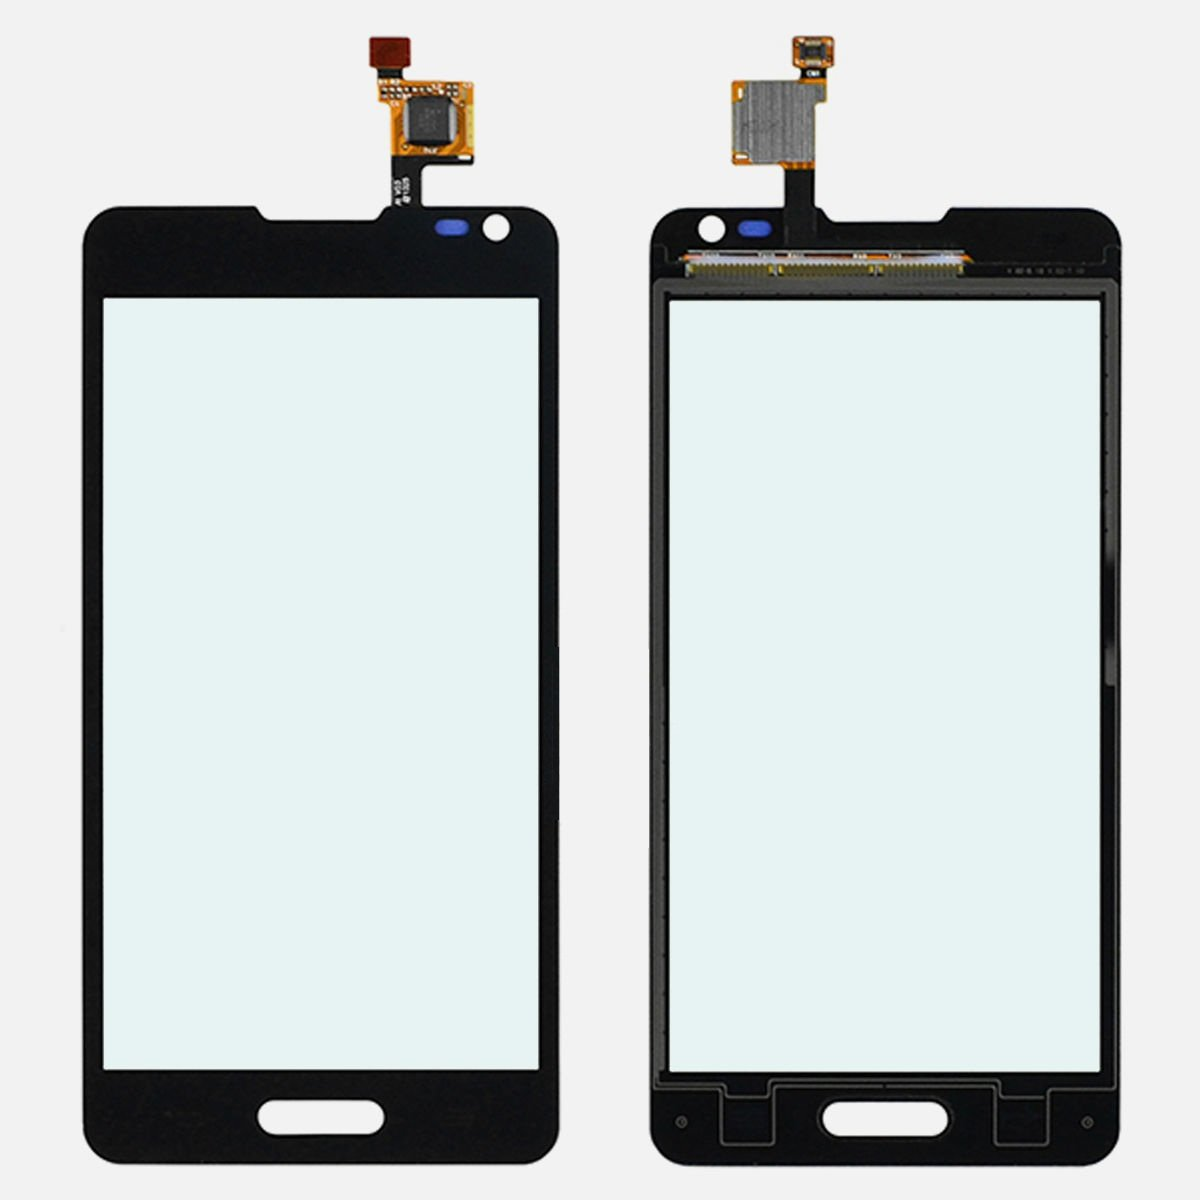 New Black LG Optimus F6 D500 D505 Digitizer Touch Screen Front Outer Glass Panel